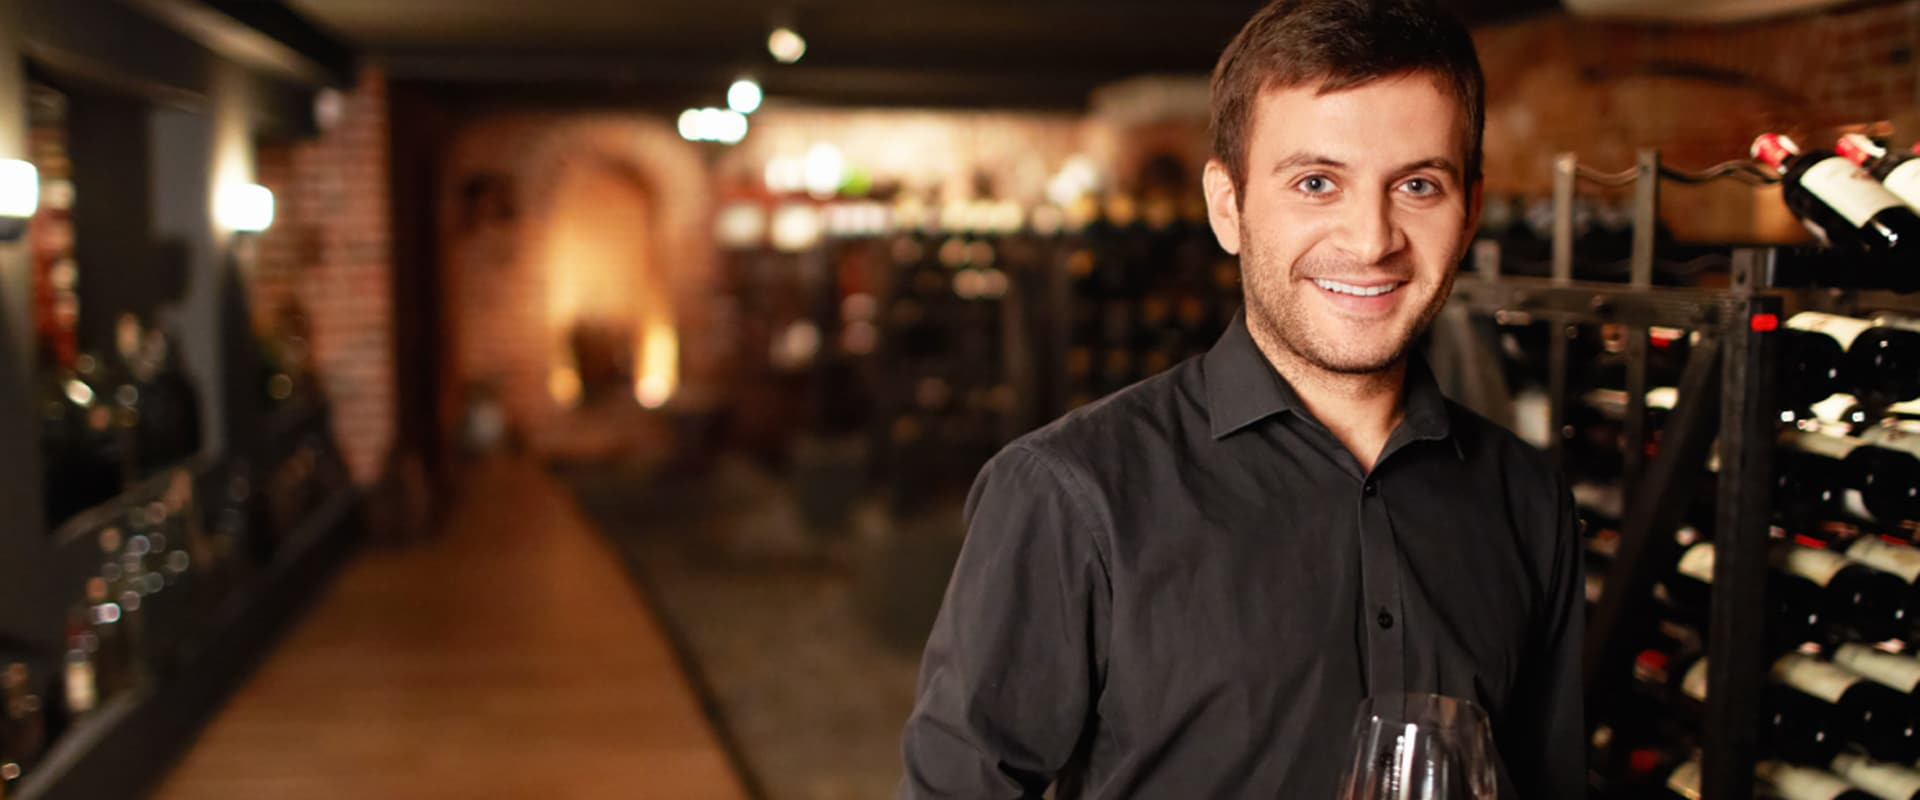 Sipping wine with your private sommelier